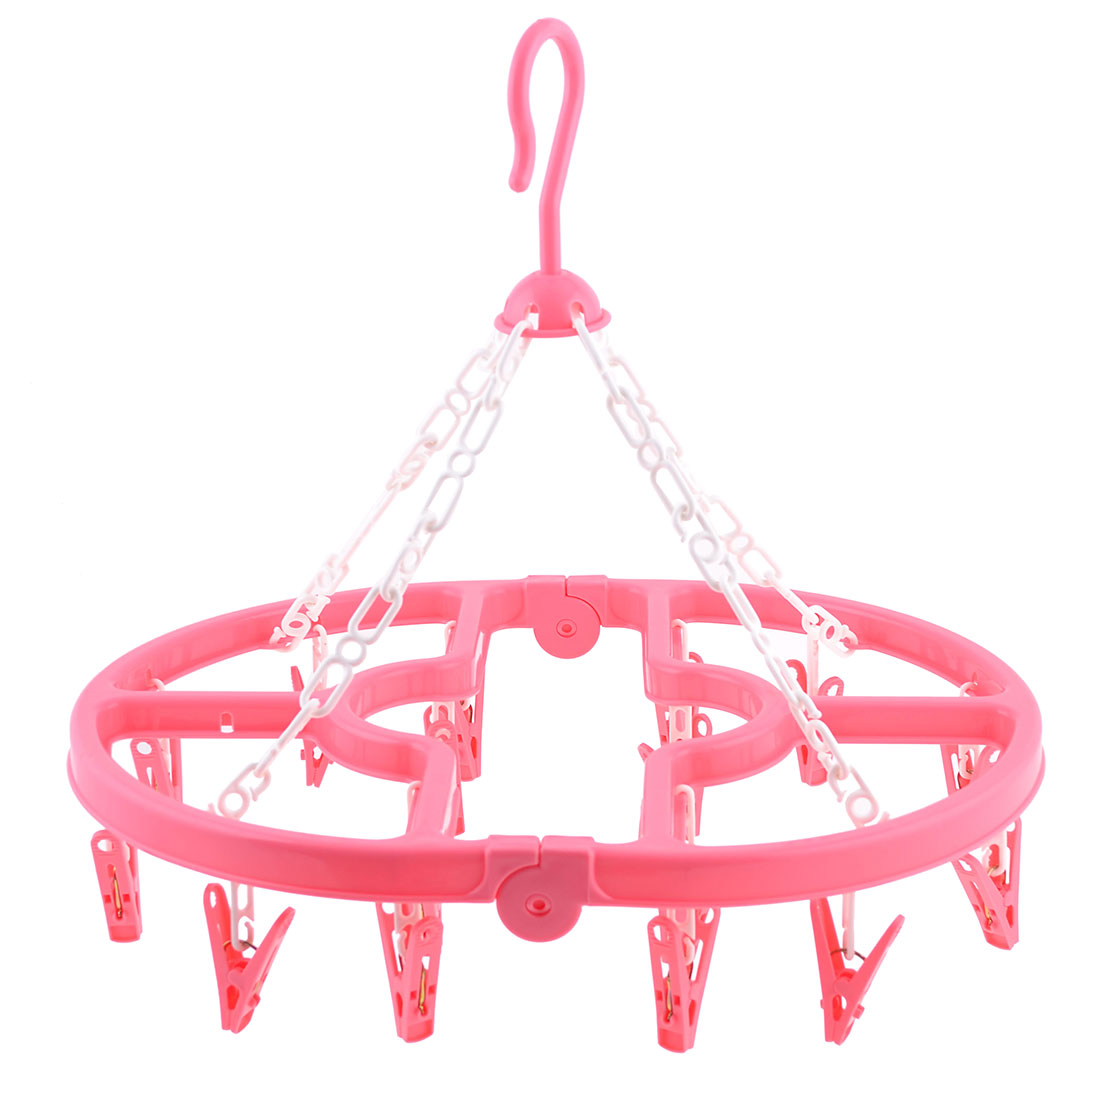 Household Folding Pink Plastic 16 Pegs Oval Frame Airing Clips Clamps Hanger